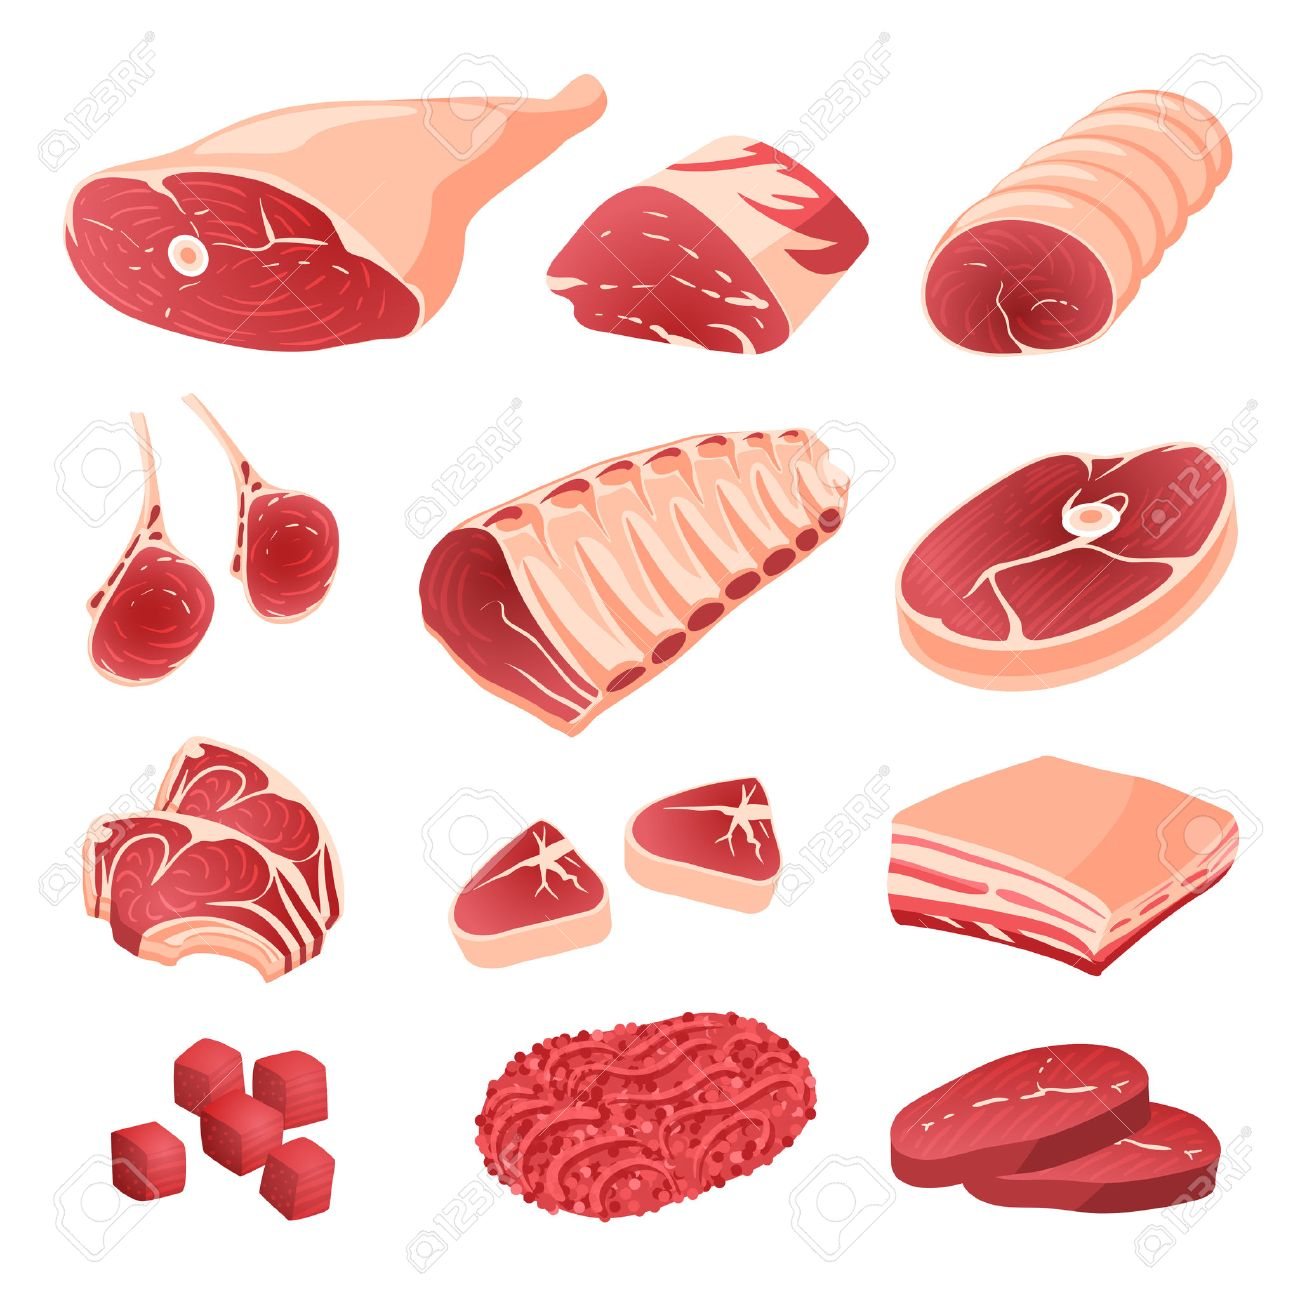 Set Of Cartoon Food Meat Cuts Assortment Beef Pork Lamb Royalty Free Cliparts Vectors And Stock Illustration Image 53858117